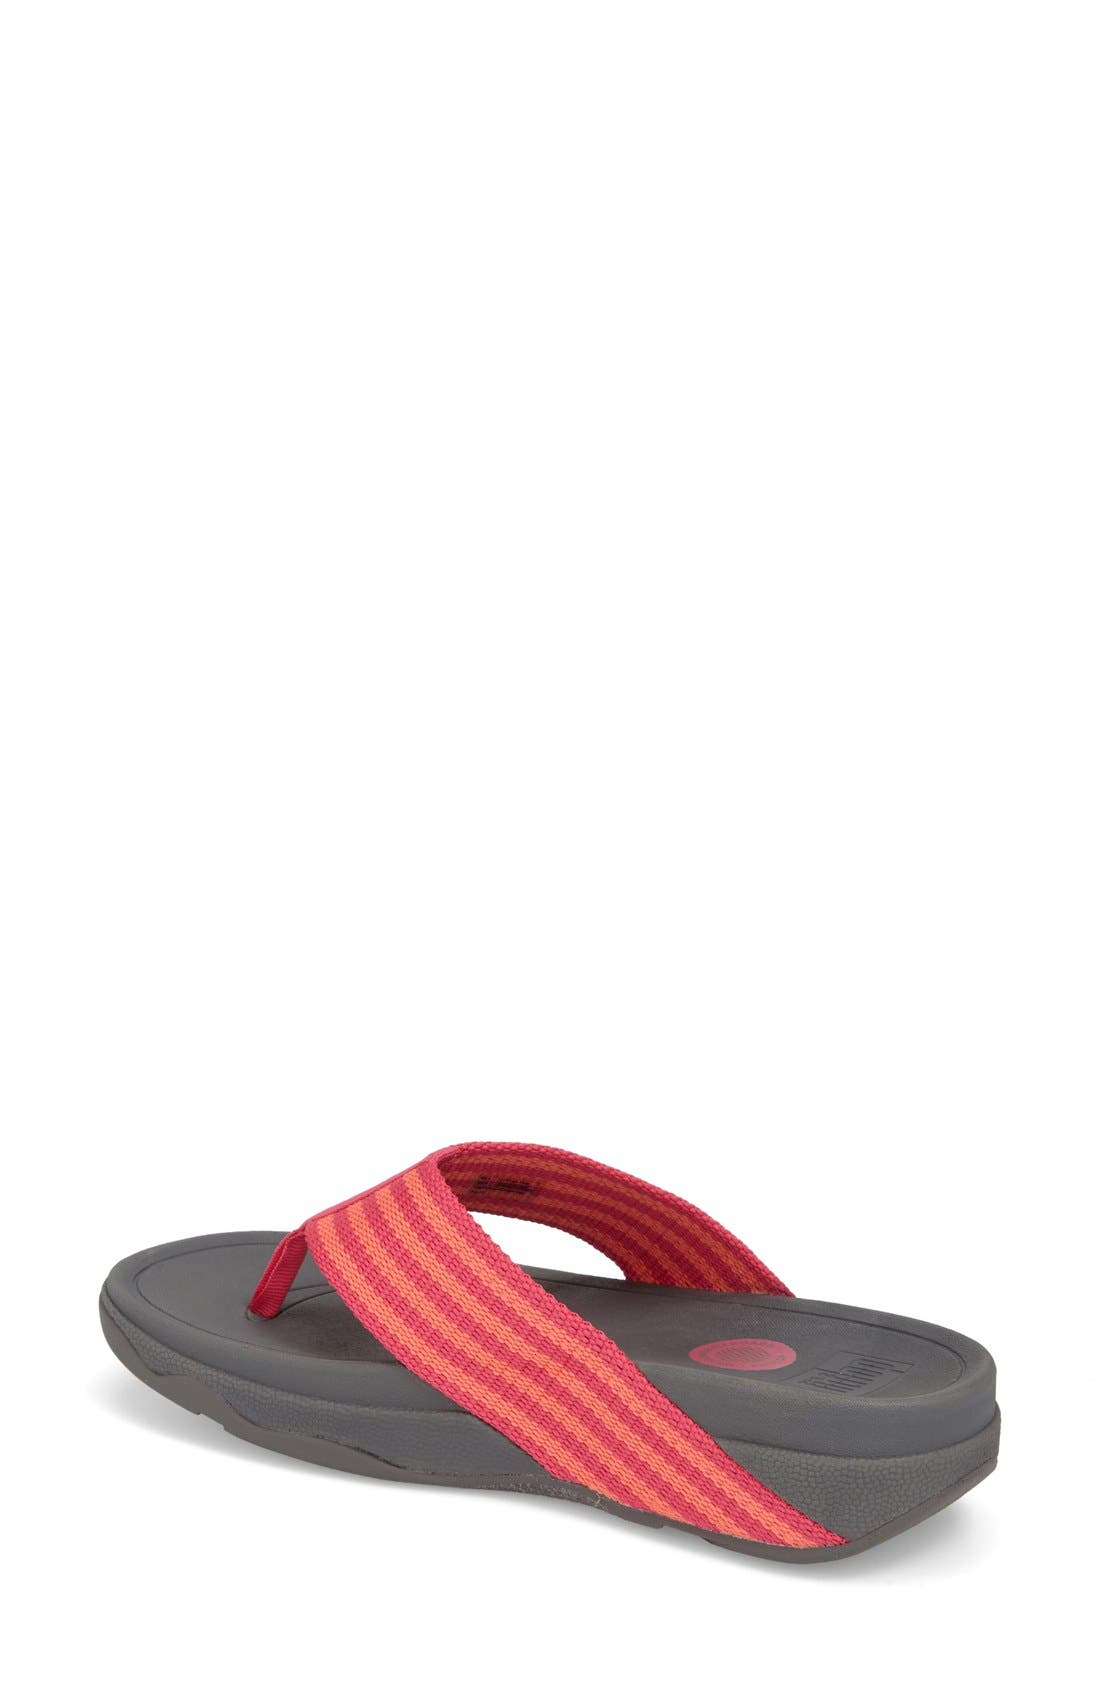 'Surfa' Thong Sandal,                             Alternate thumbnail 18, color,